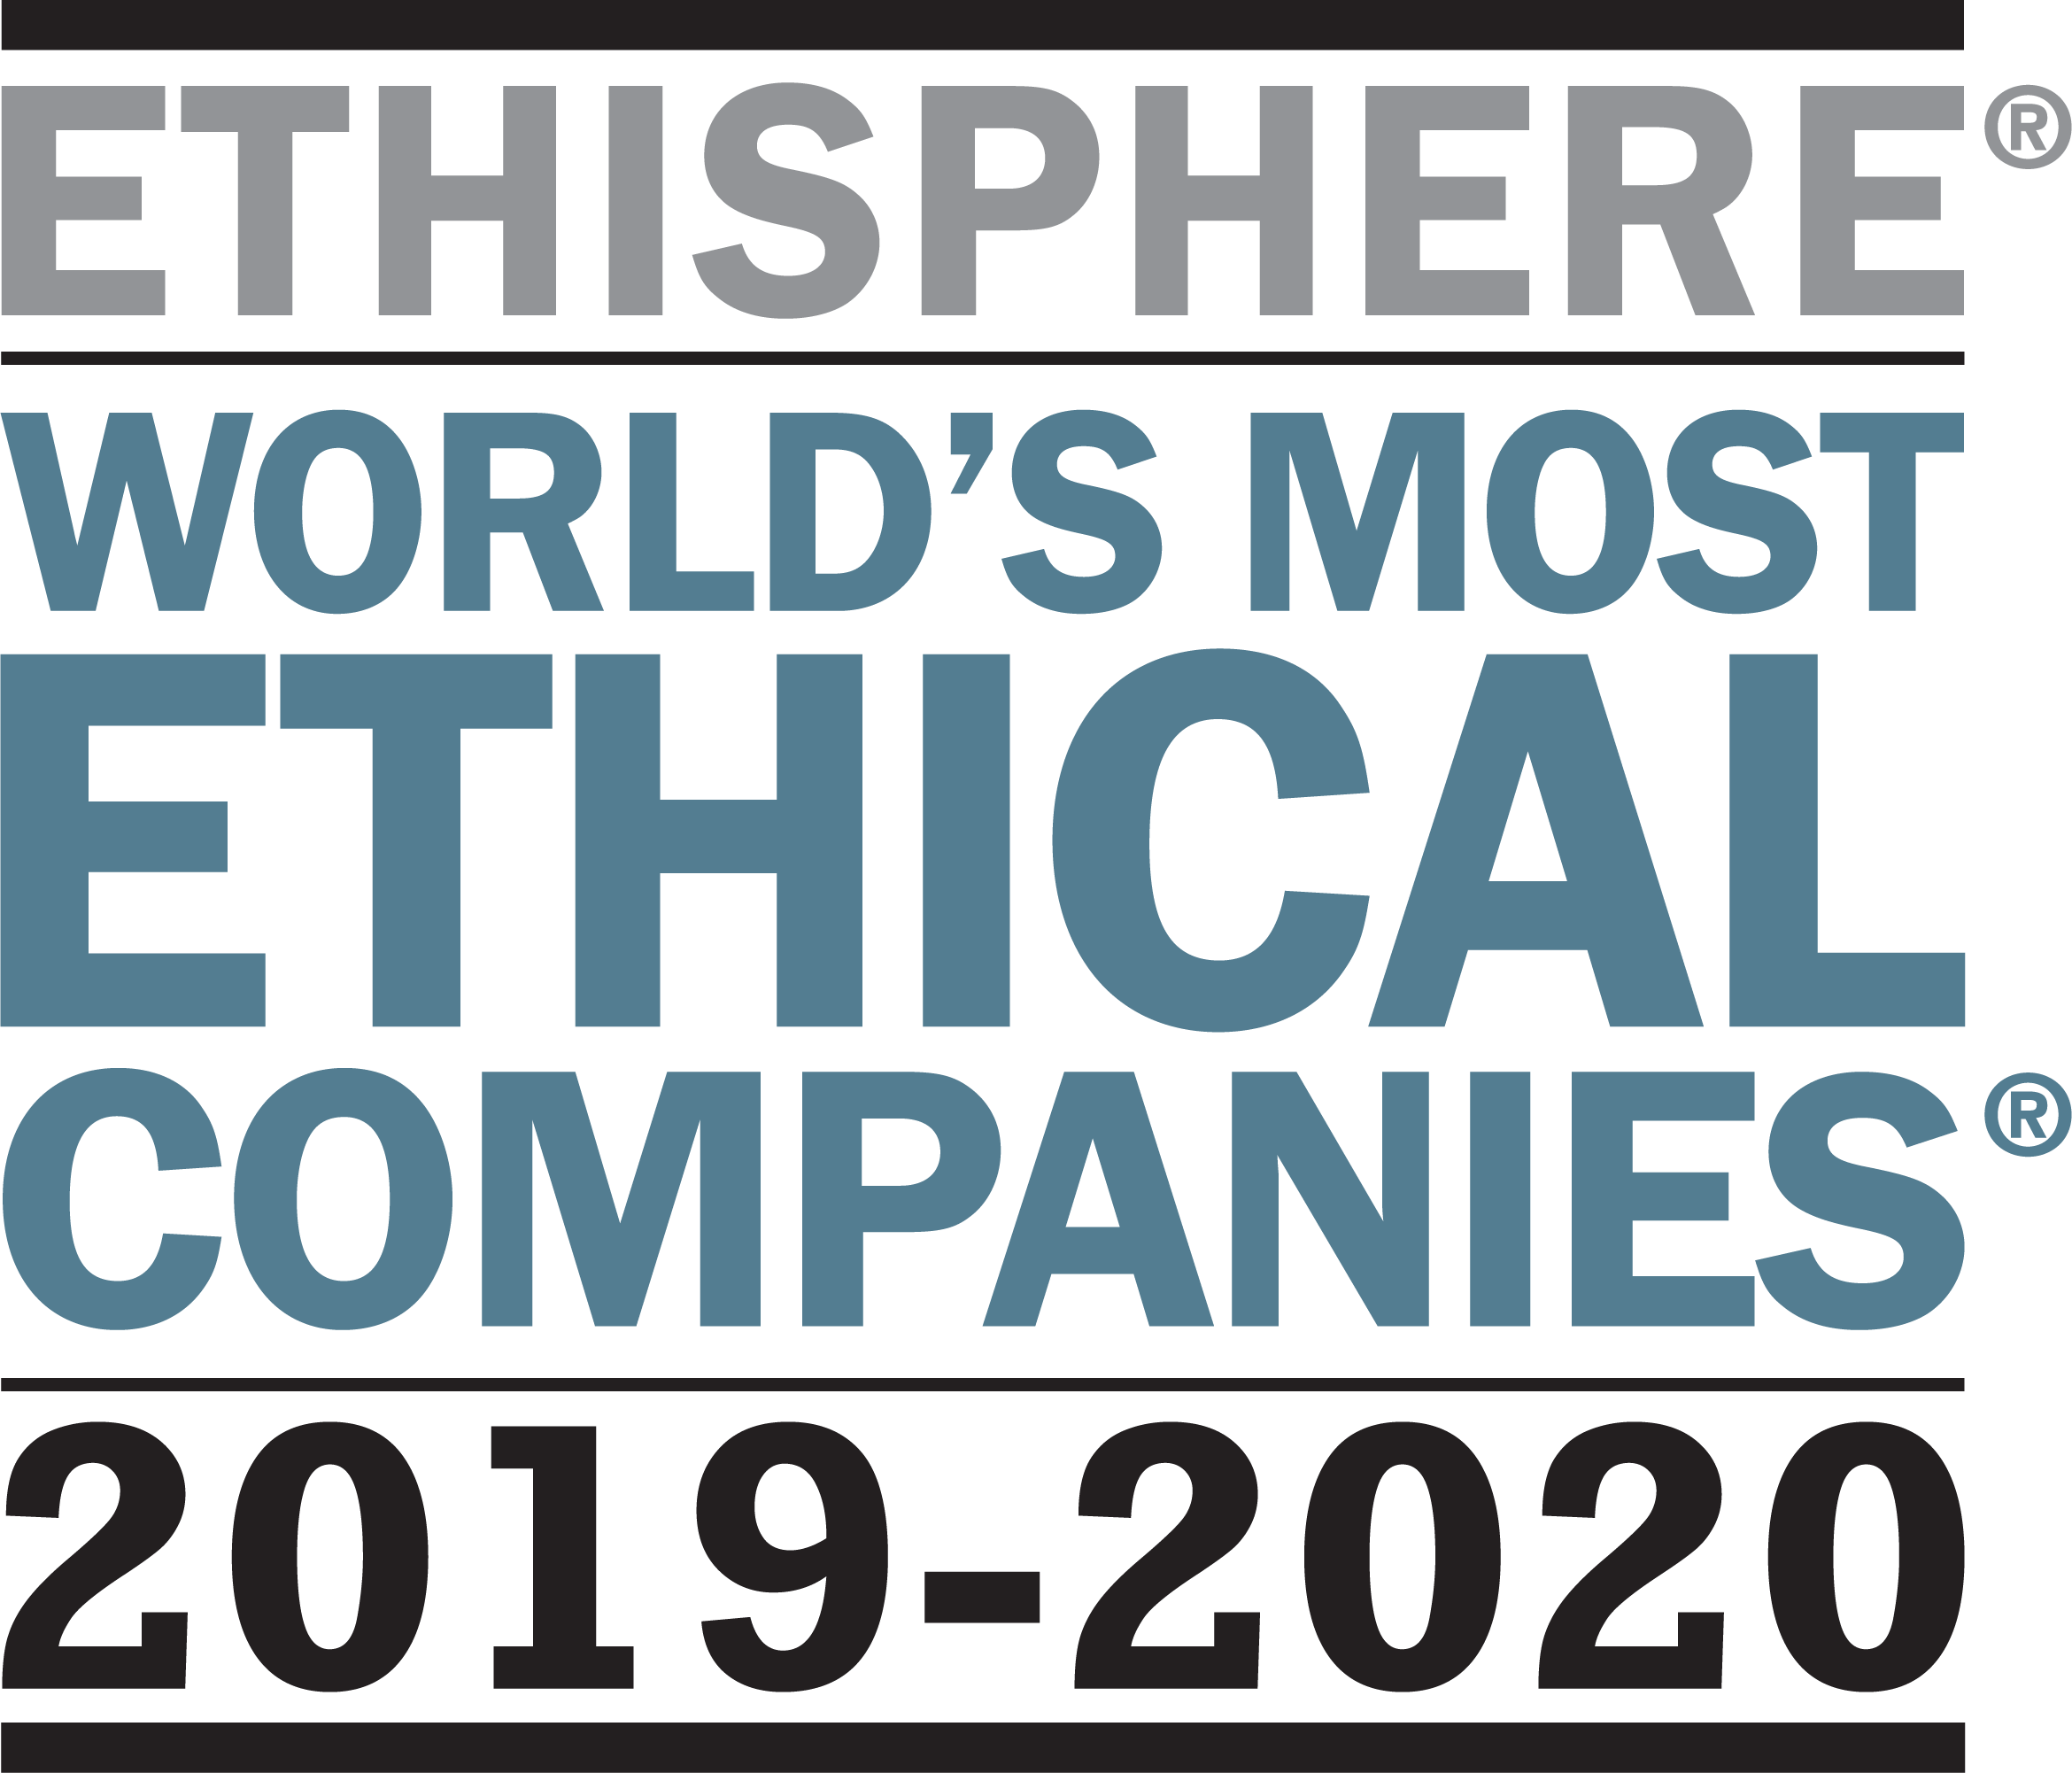 World's Most Ethical Companies 2019-2020